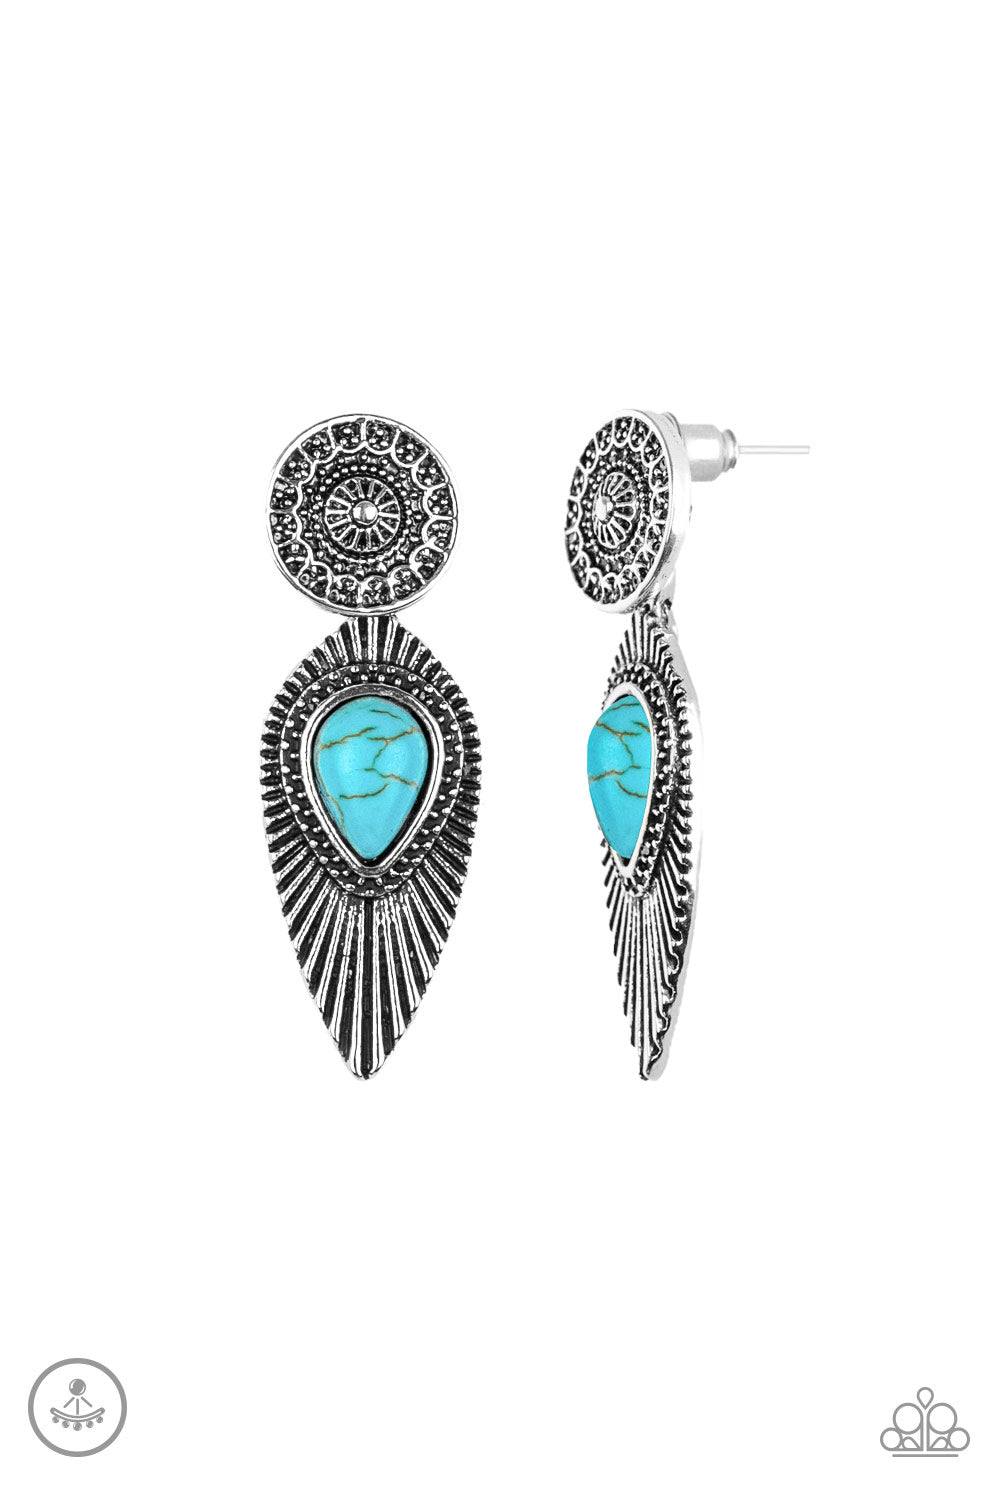 Paparazzi Accessories - Fly Into The Sun - Blue Earrings - JMJ Jewelry Collection